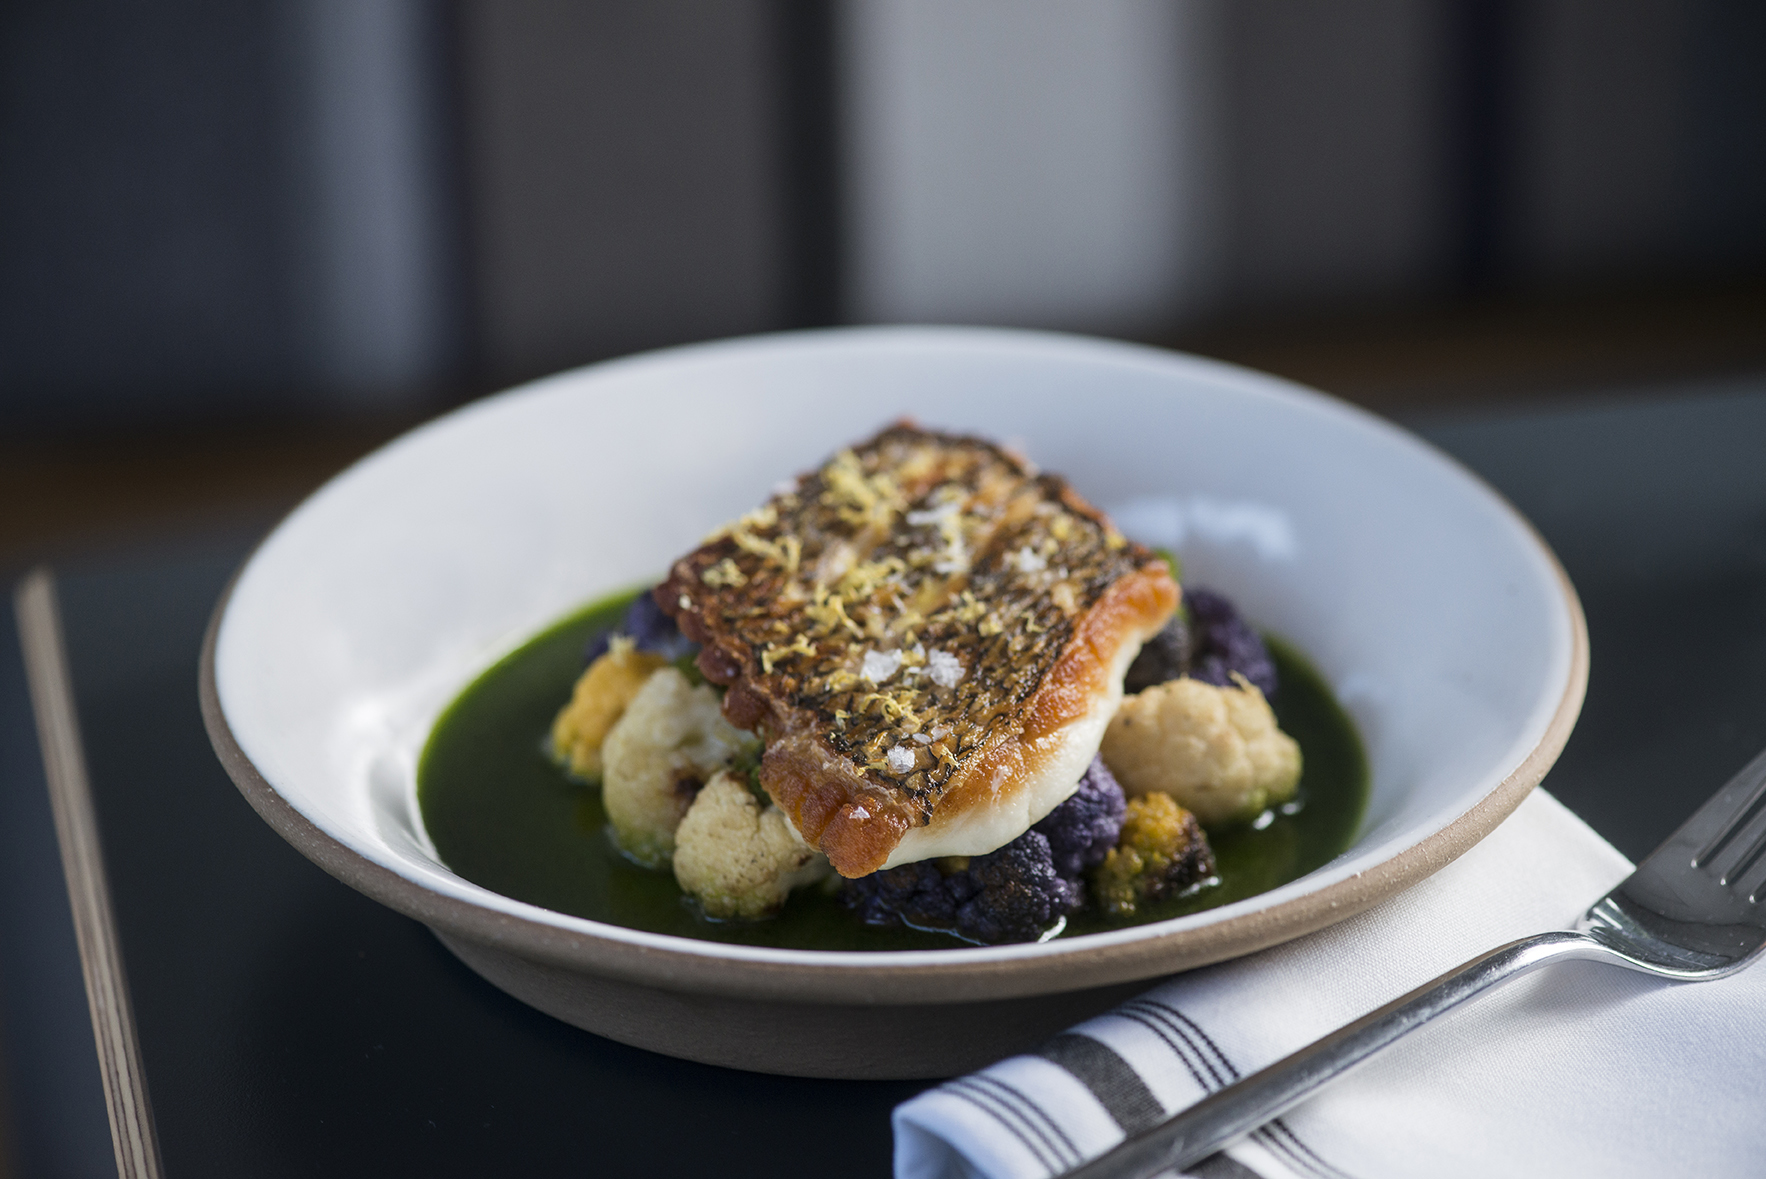 <p>Black bass at Loring Place</p>